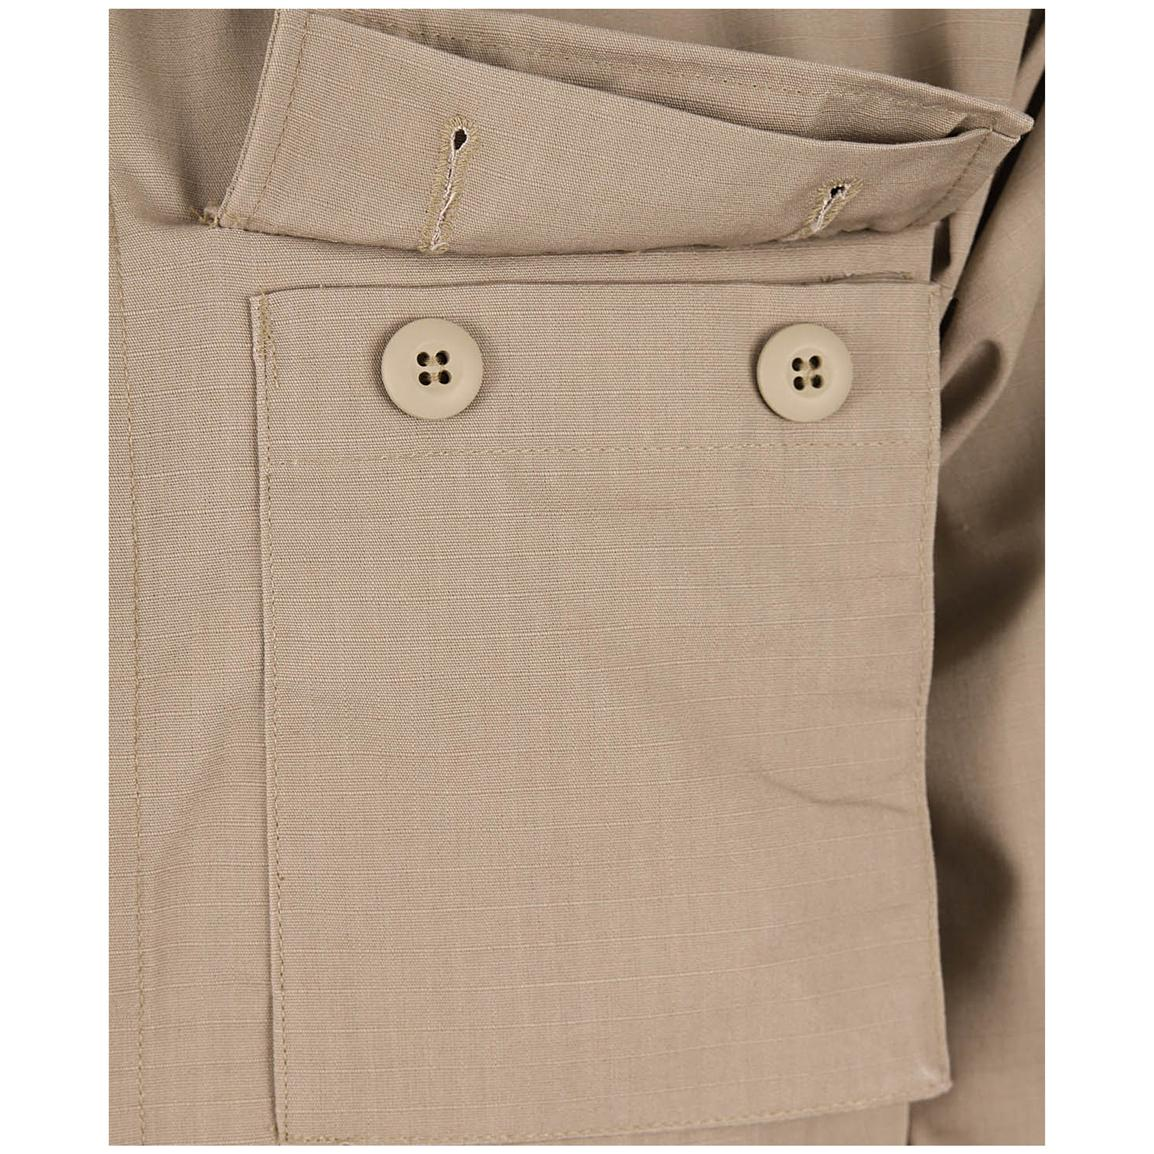 Two chest cargo pockets with hidden button flaps